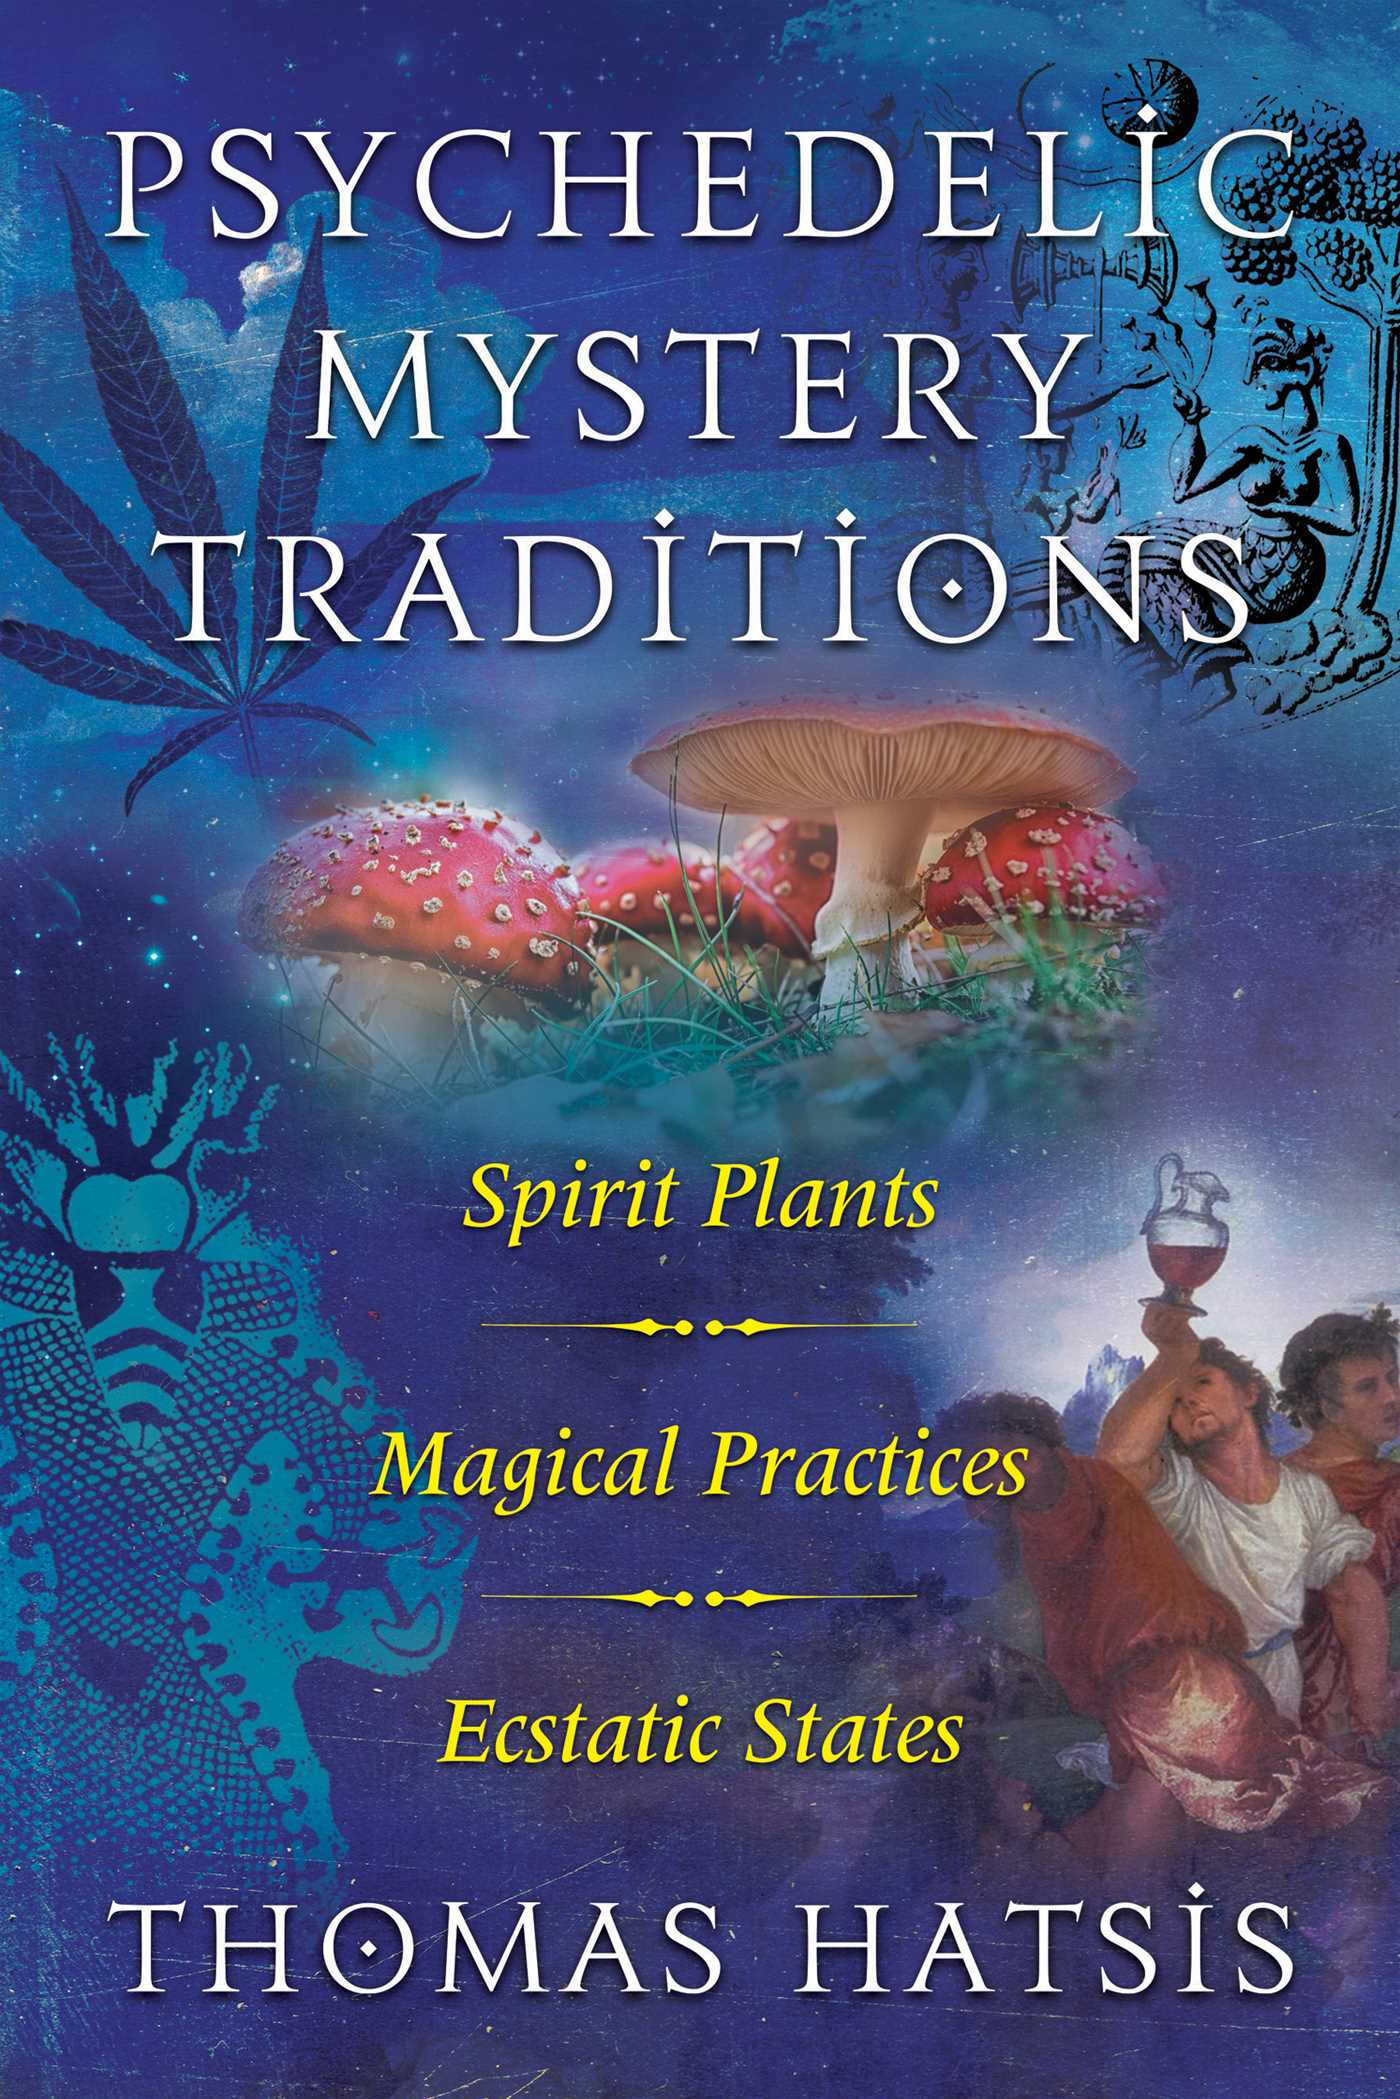 Psychedelic mystery traditions 9781620558010 hr